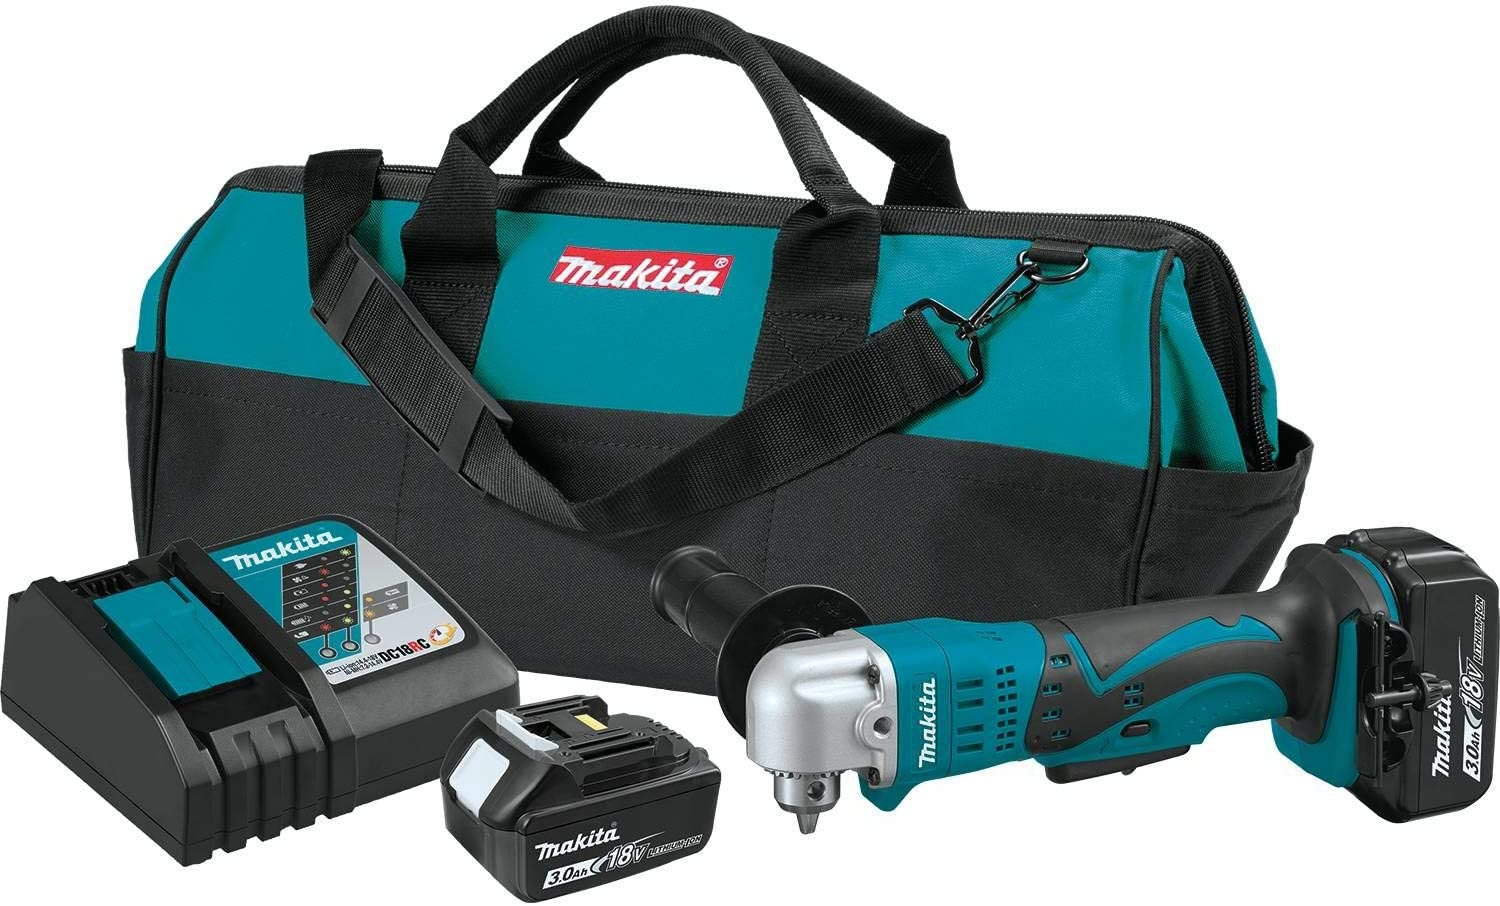 Makita Xad01 18v Lxt Lithium Ion Cordless 3 8 Angle Drill Kit 3 0ah Amazon Com